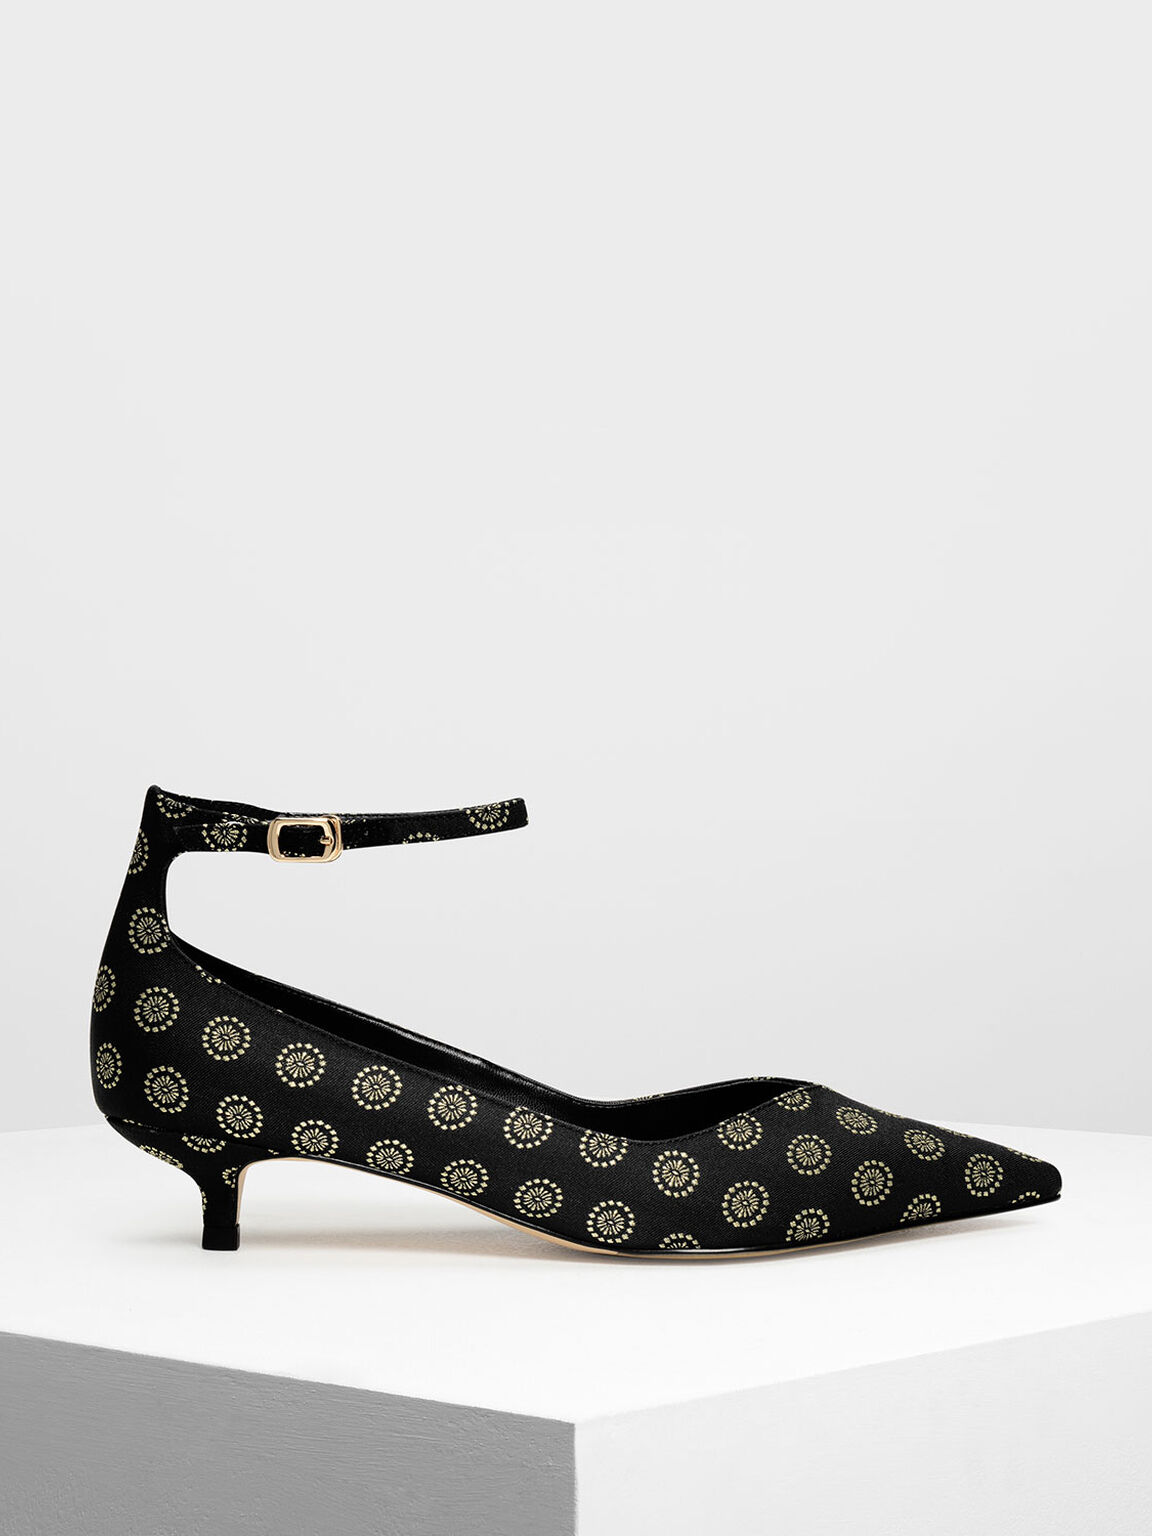 V Cut Kitten Heel Pumps, Black Textured, hi-res